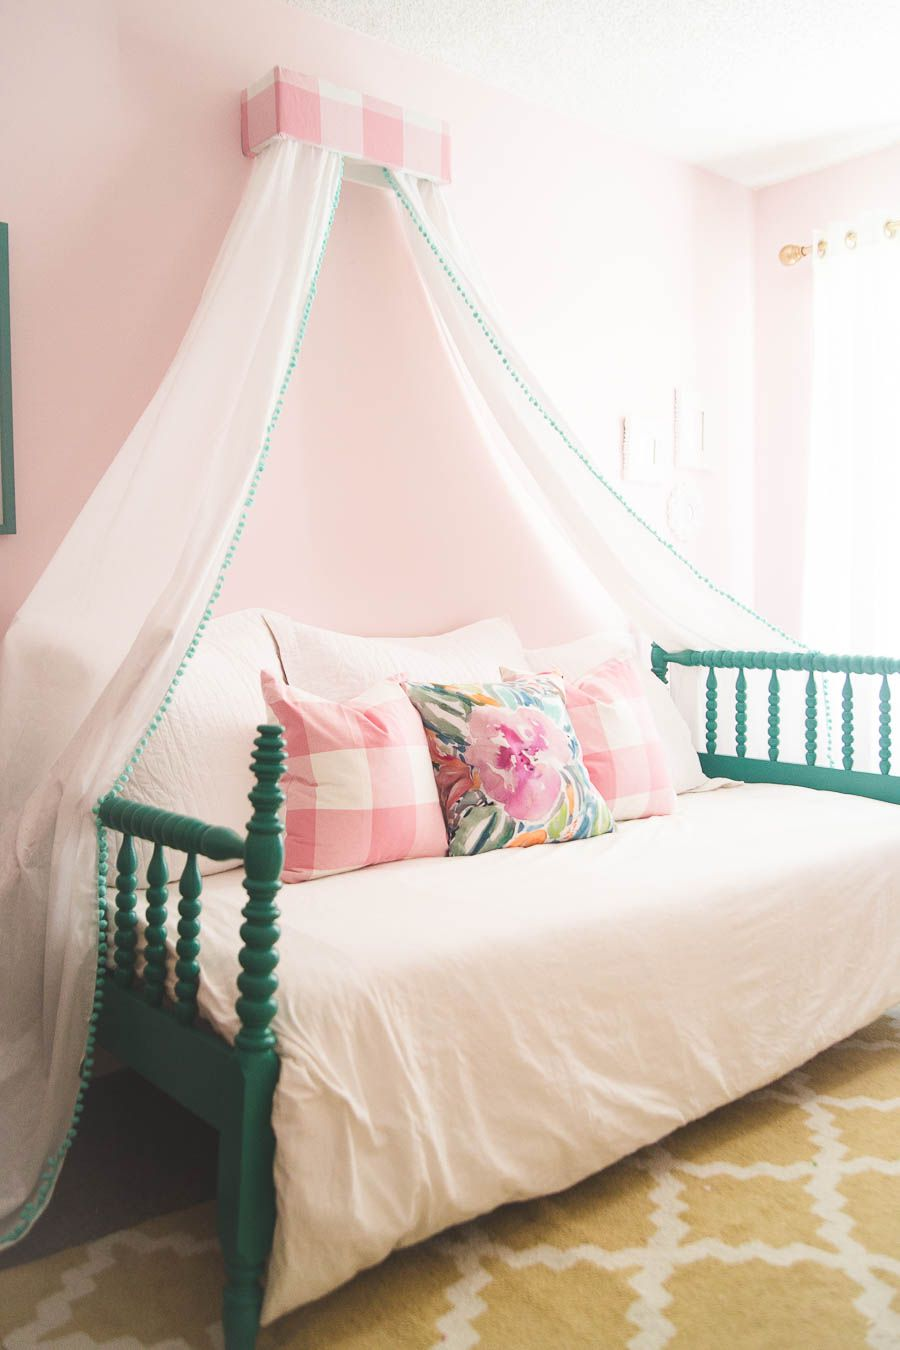 Girls room with canopy bed featuring a DIY cornice canopy